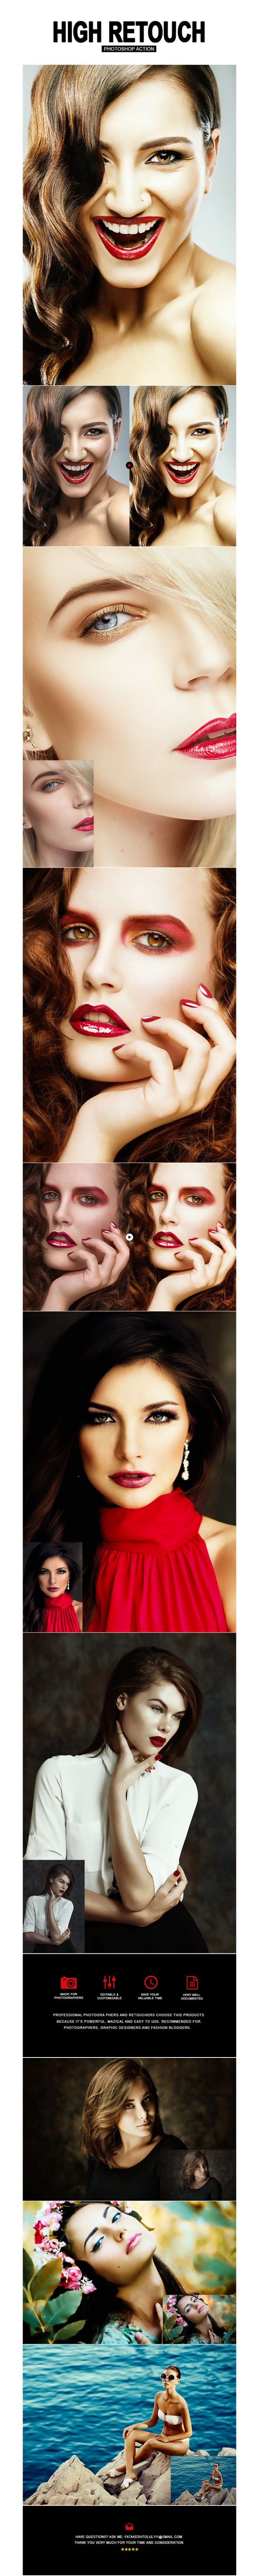 graphicriver_smooth_high_retouch_photoshop_action_19148971